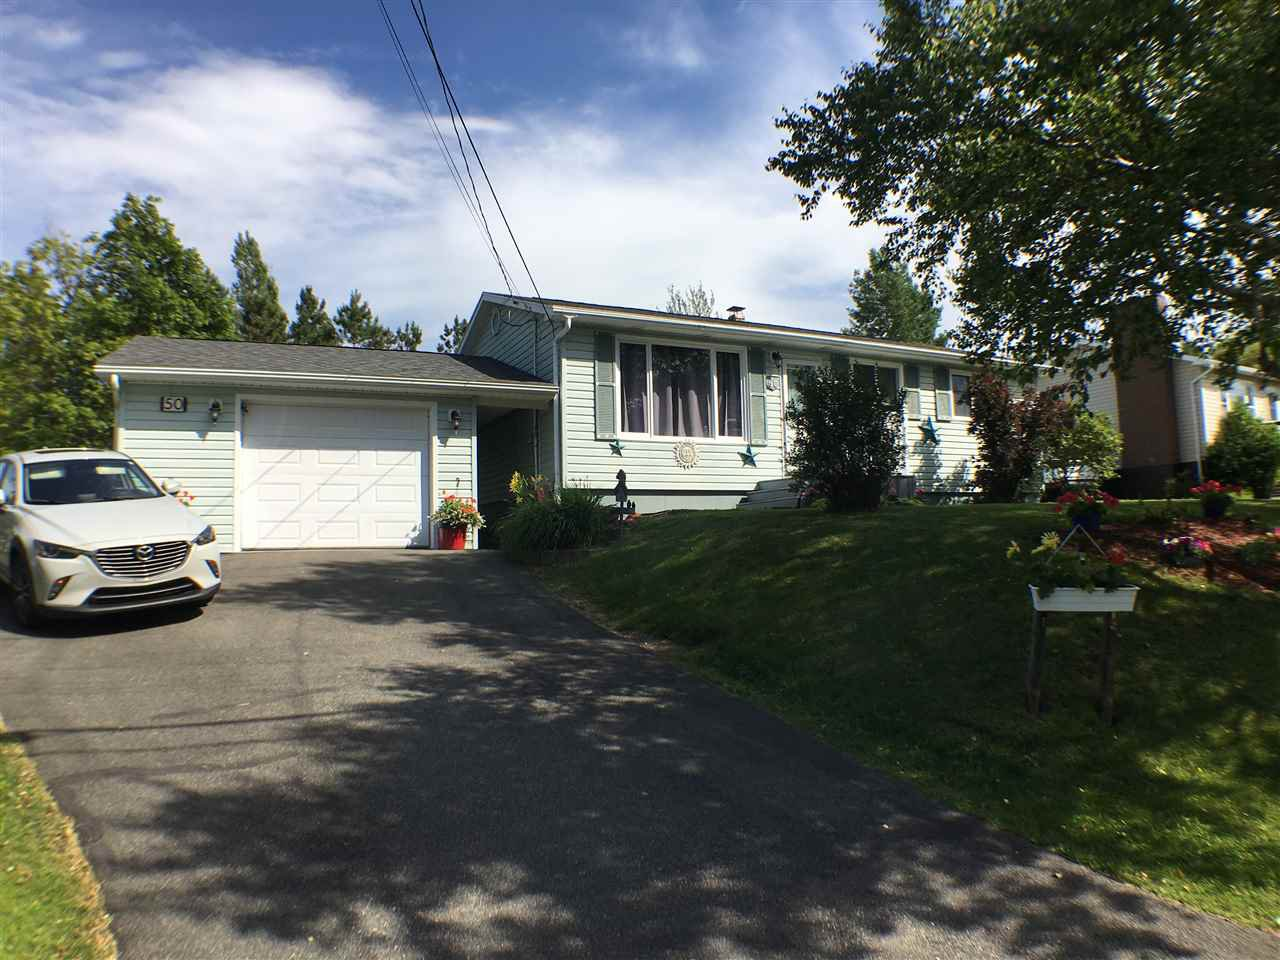 Main Photo: 50 Twelfth Street in Trenton: 107-Trenton,Westville,Pictou Residential for sale (Northern Region)  : MLS®# 201904083